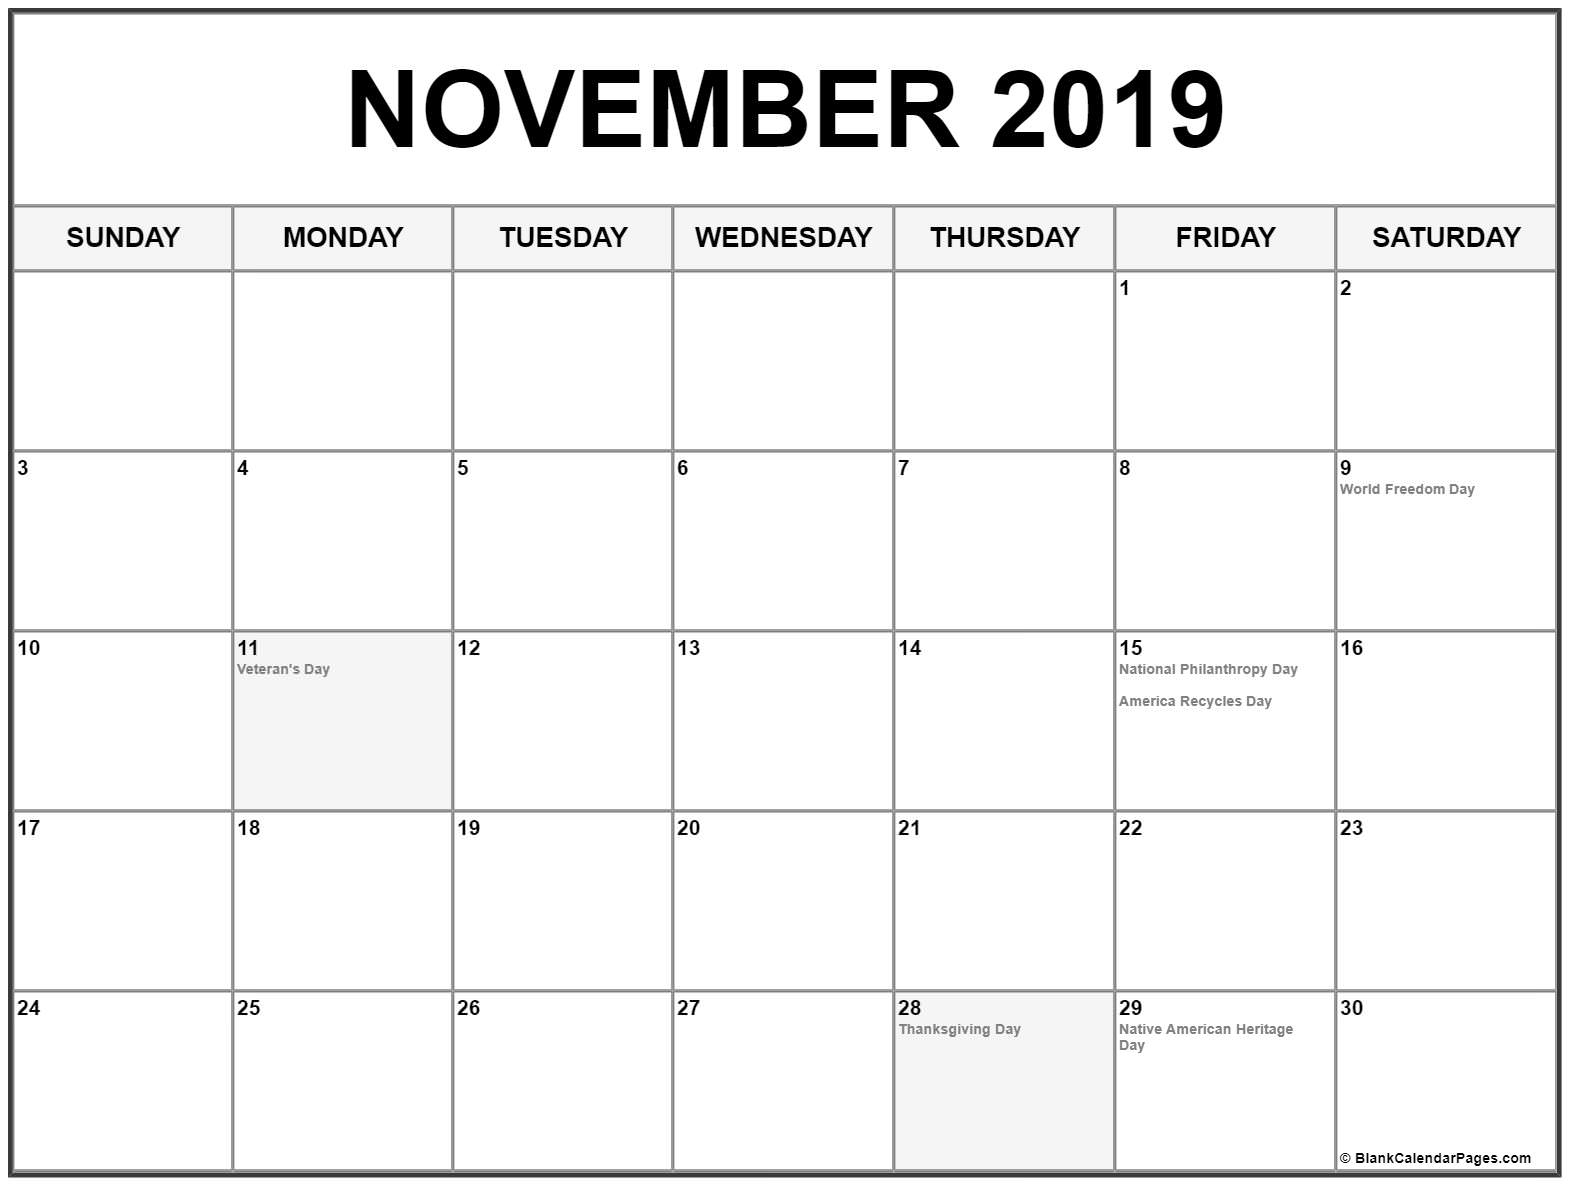 Collect November Calendar 2019 With Holidays ⋆ The Best